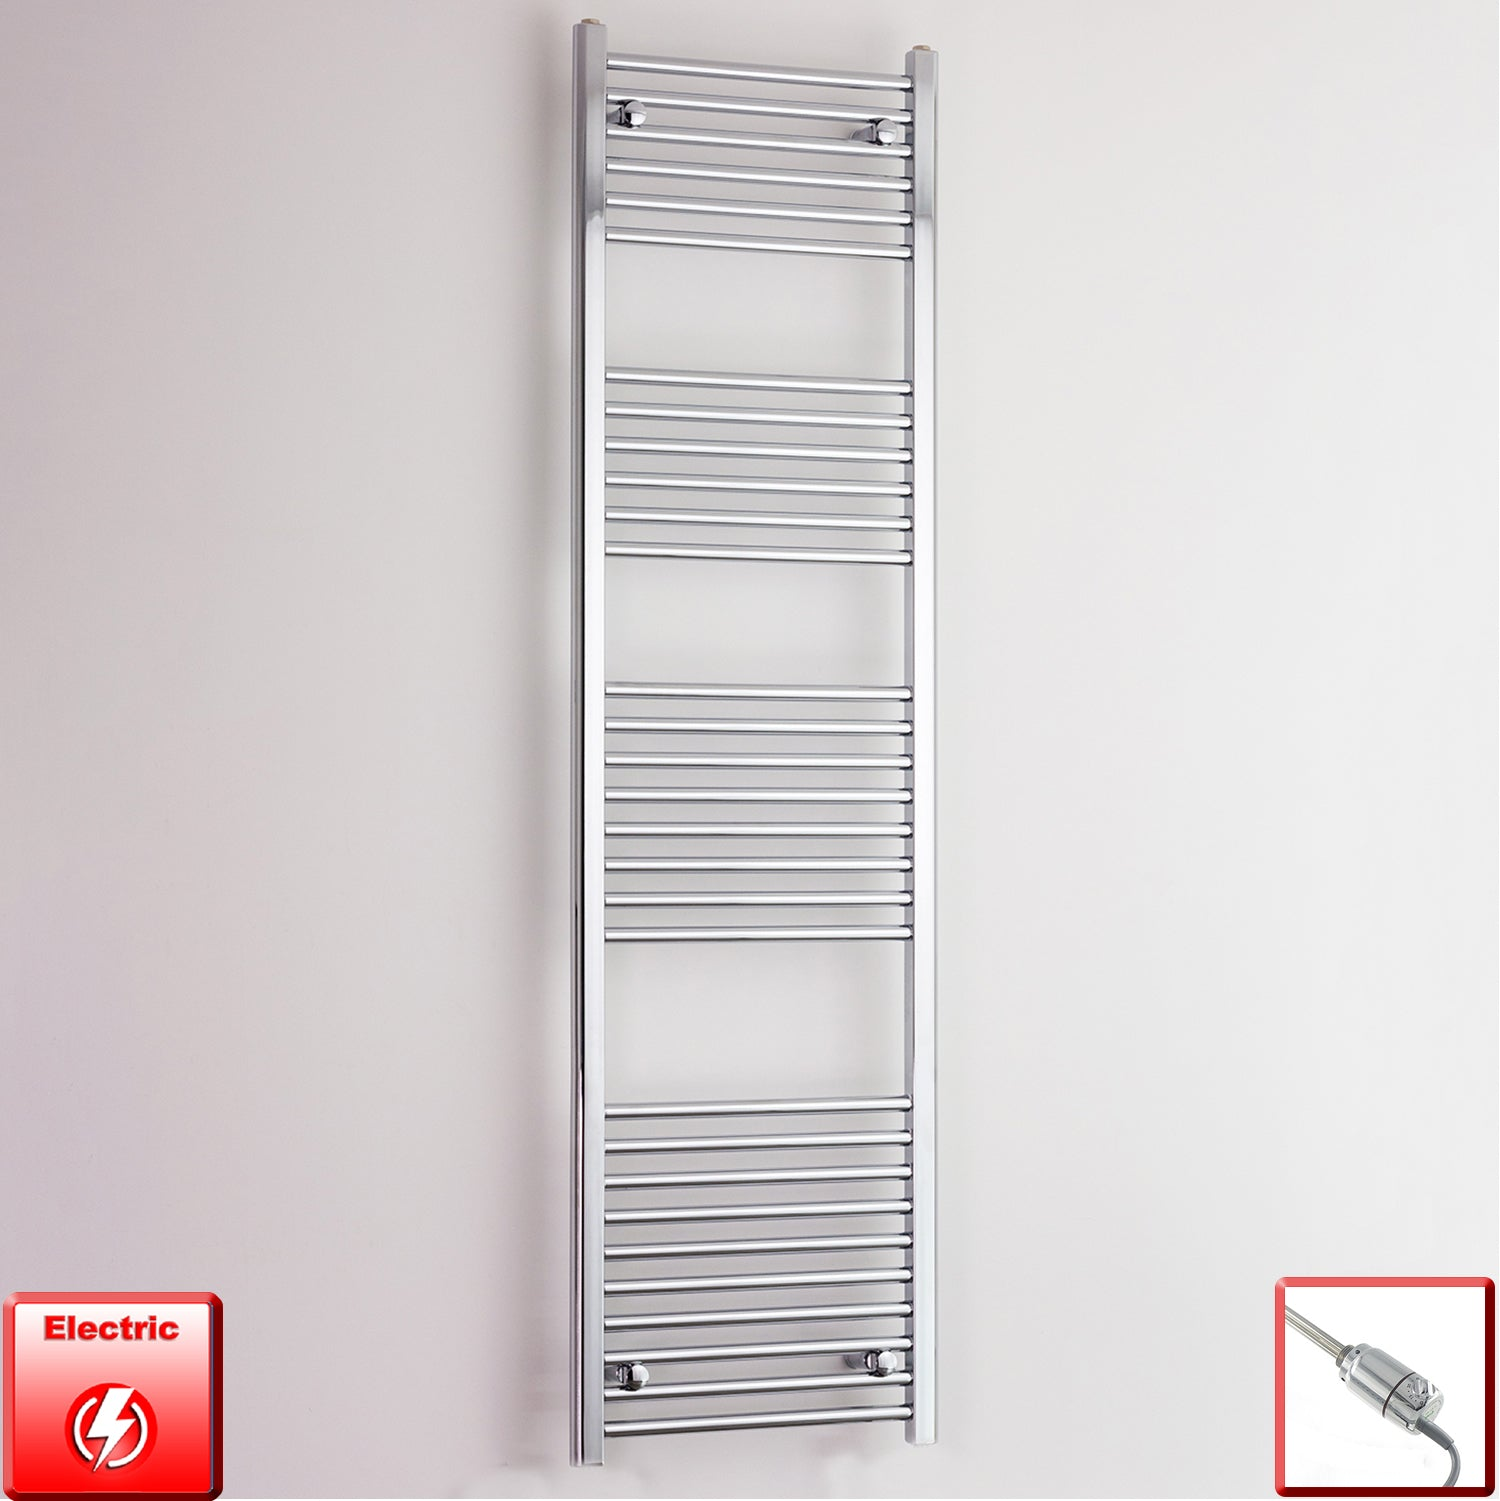 500mm Wide 1800mm High Pre-Filled Chrome Electric Towel Rail Radiator With Thermostatic GT Element